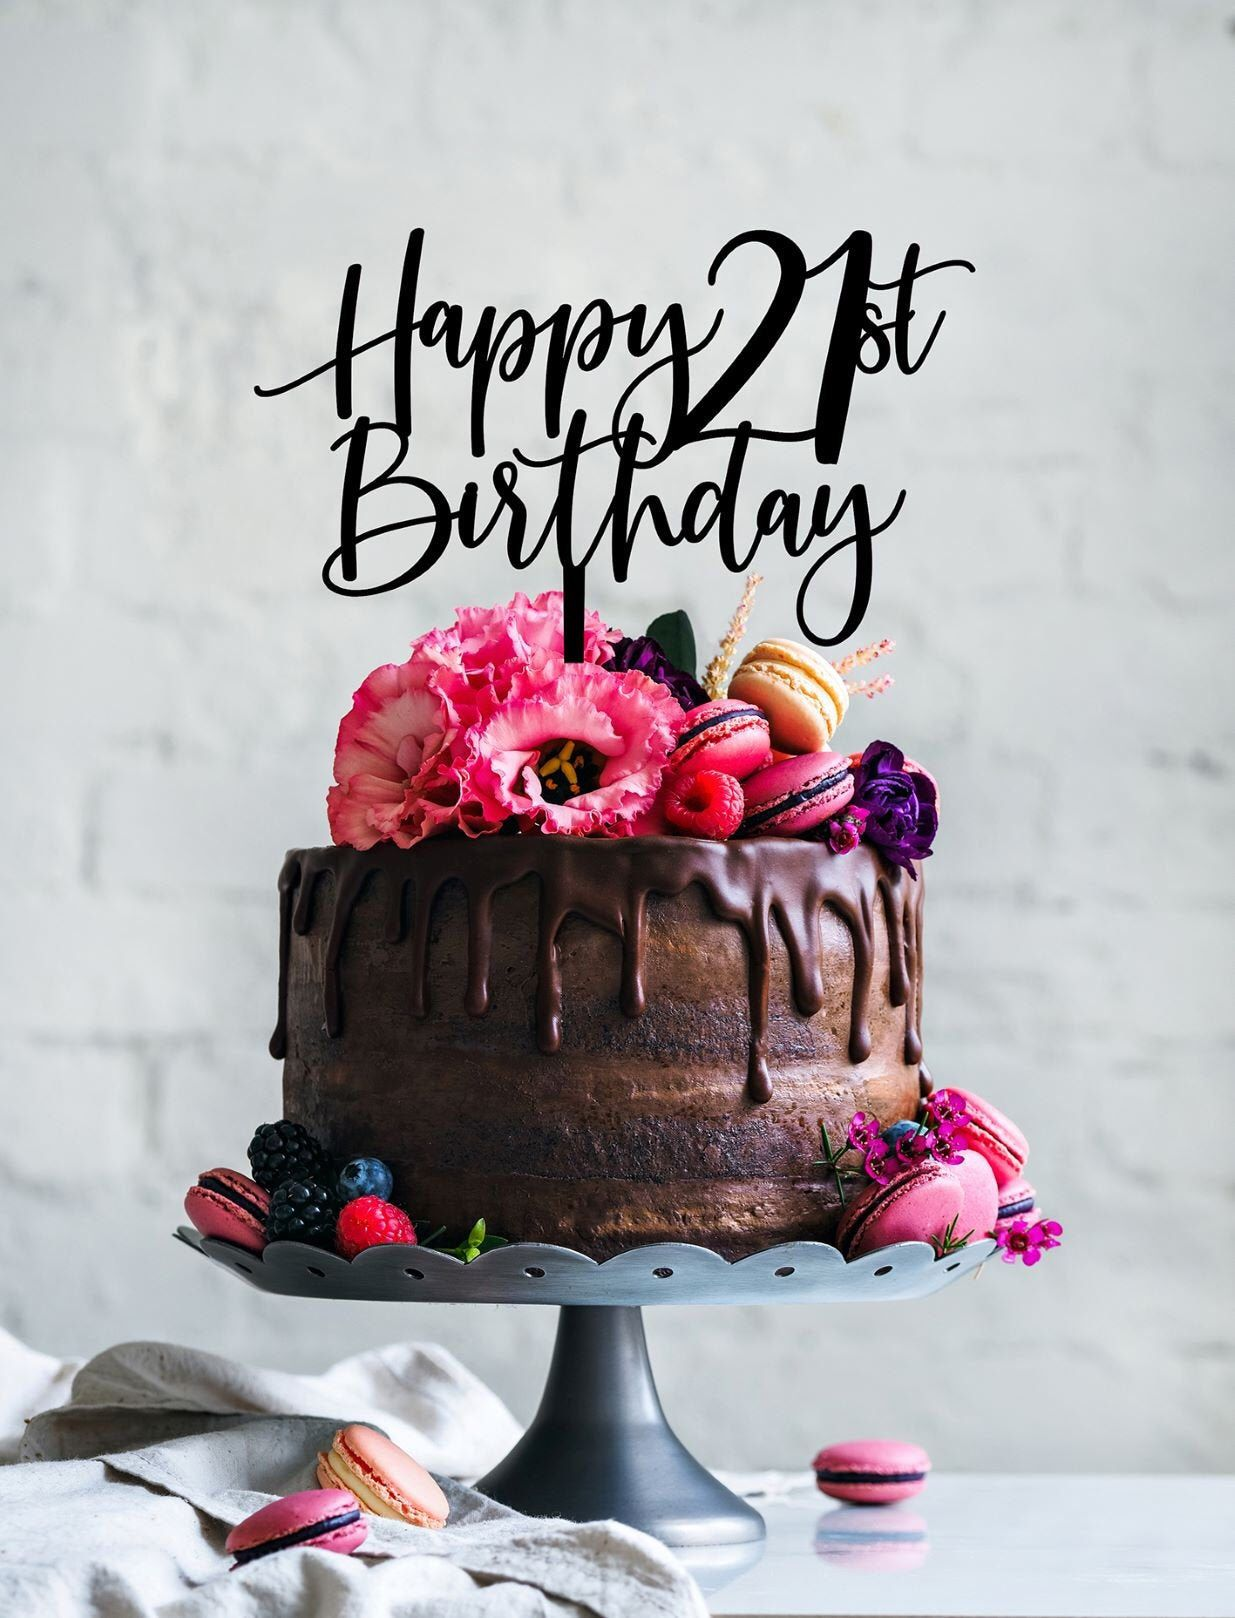 Super Happy 21St Birthday 21 Twenty One 21St Birthday Cake Cake Funny Birthday Cards Online Alyptdamsfinfo